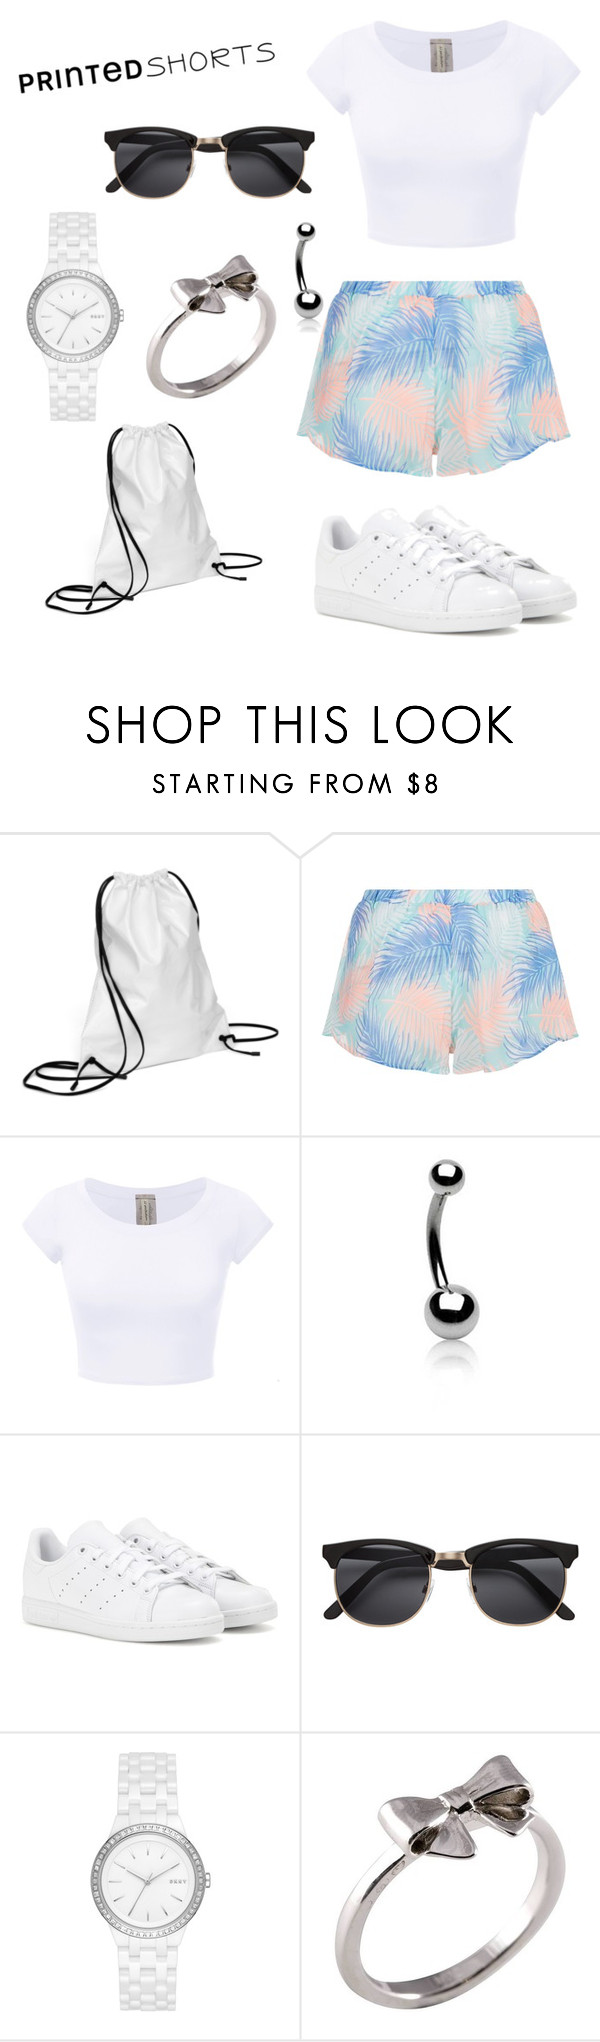 """""""Untitled #20"""" by kleine-vanni ❤ liked on Polyvore featuring Xenab Lone, New Look, Bling Jewelry, adidas, DKNY, Joy Everley and printedshorts"""